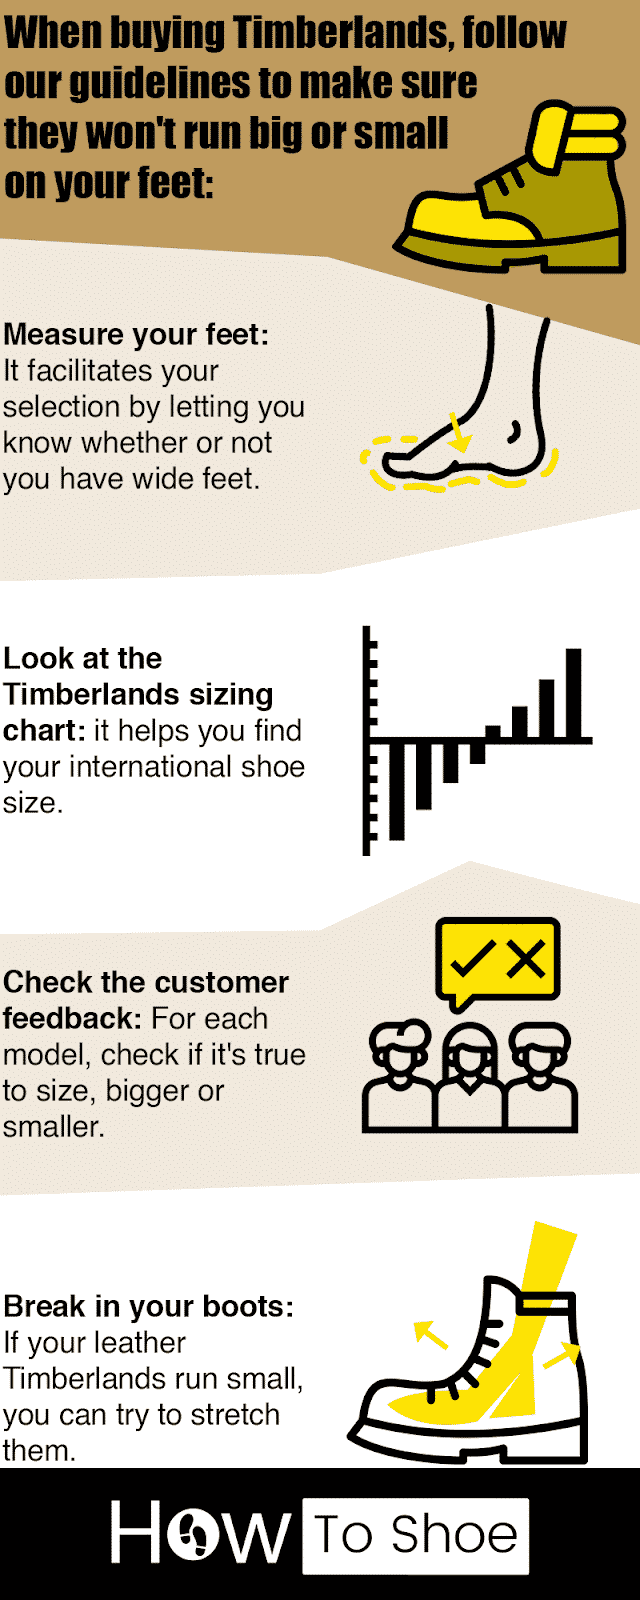 infographic about timberland sizing